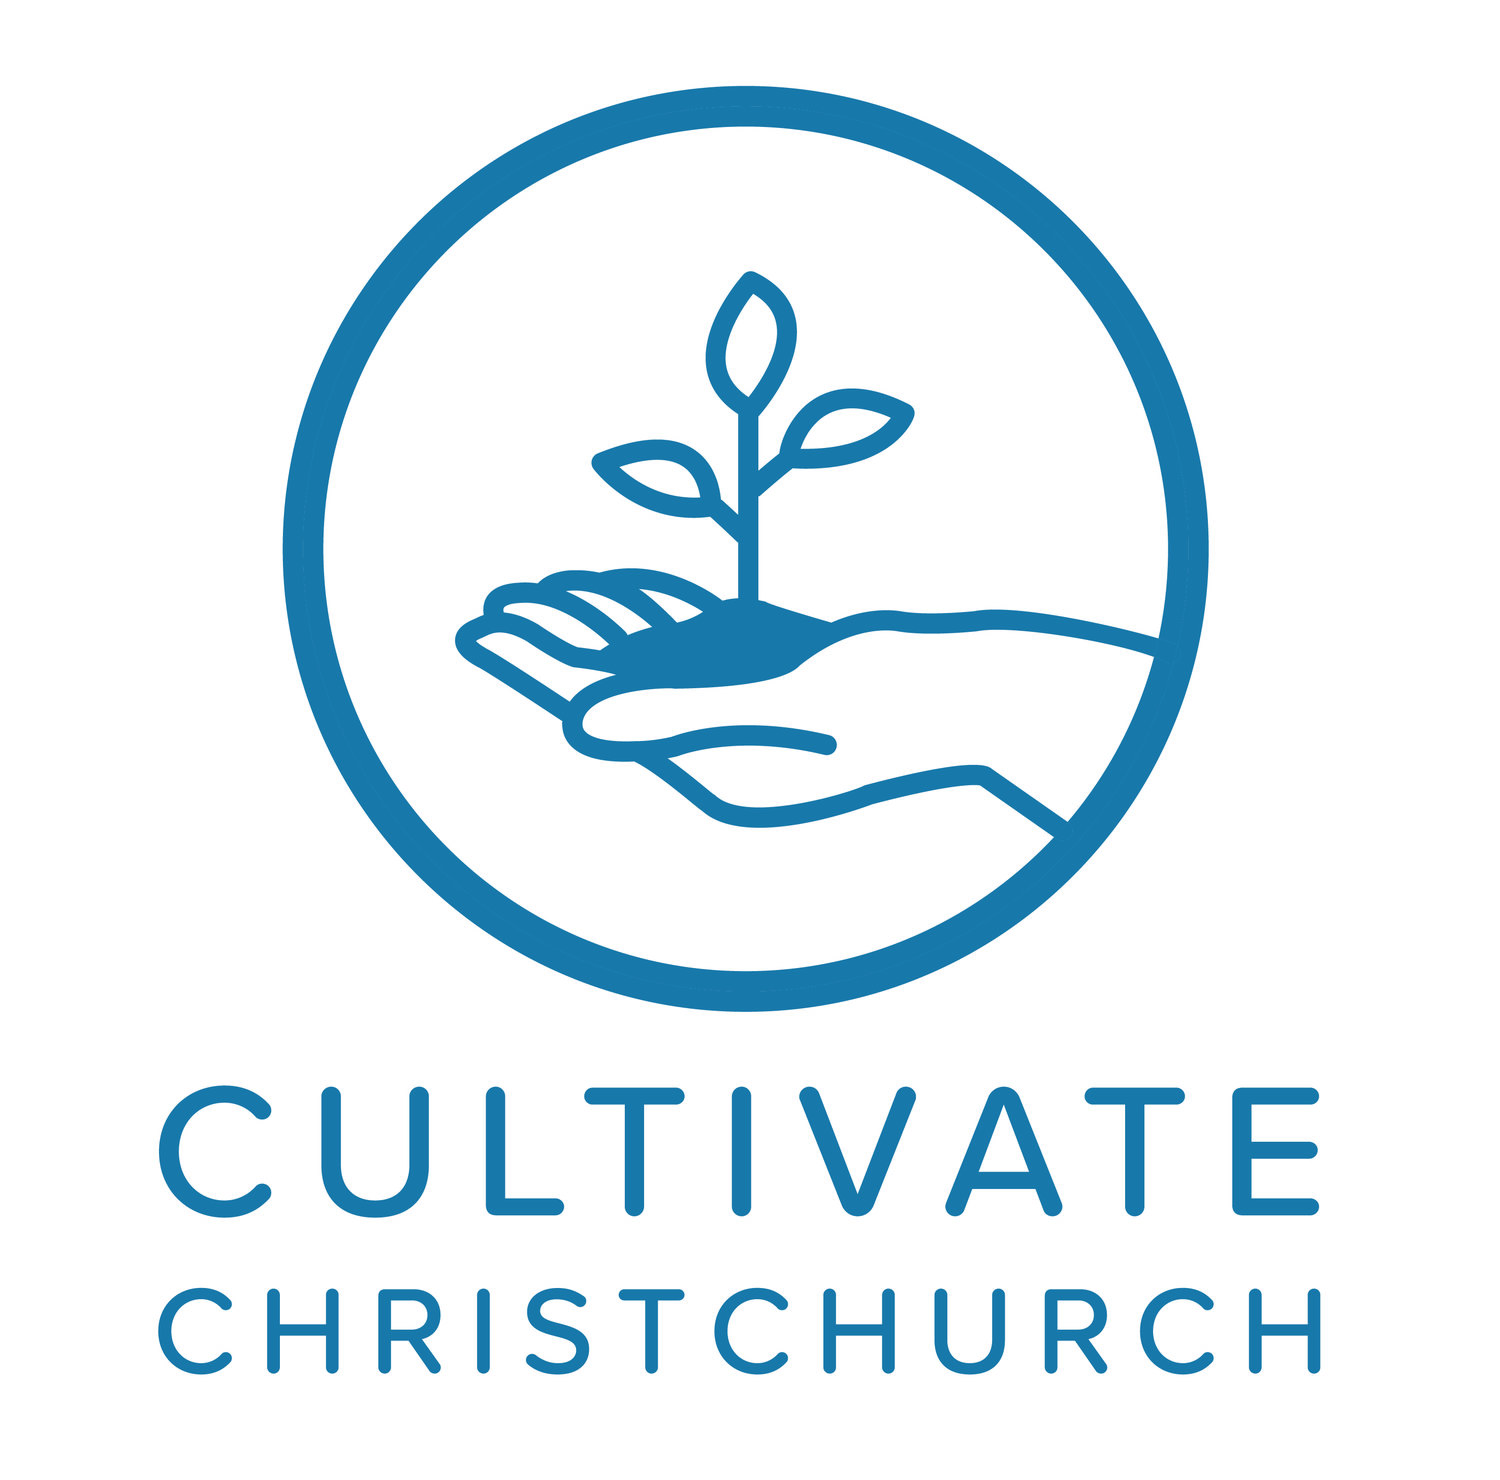 CULTIVATE CHRISTCHURCH